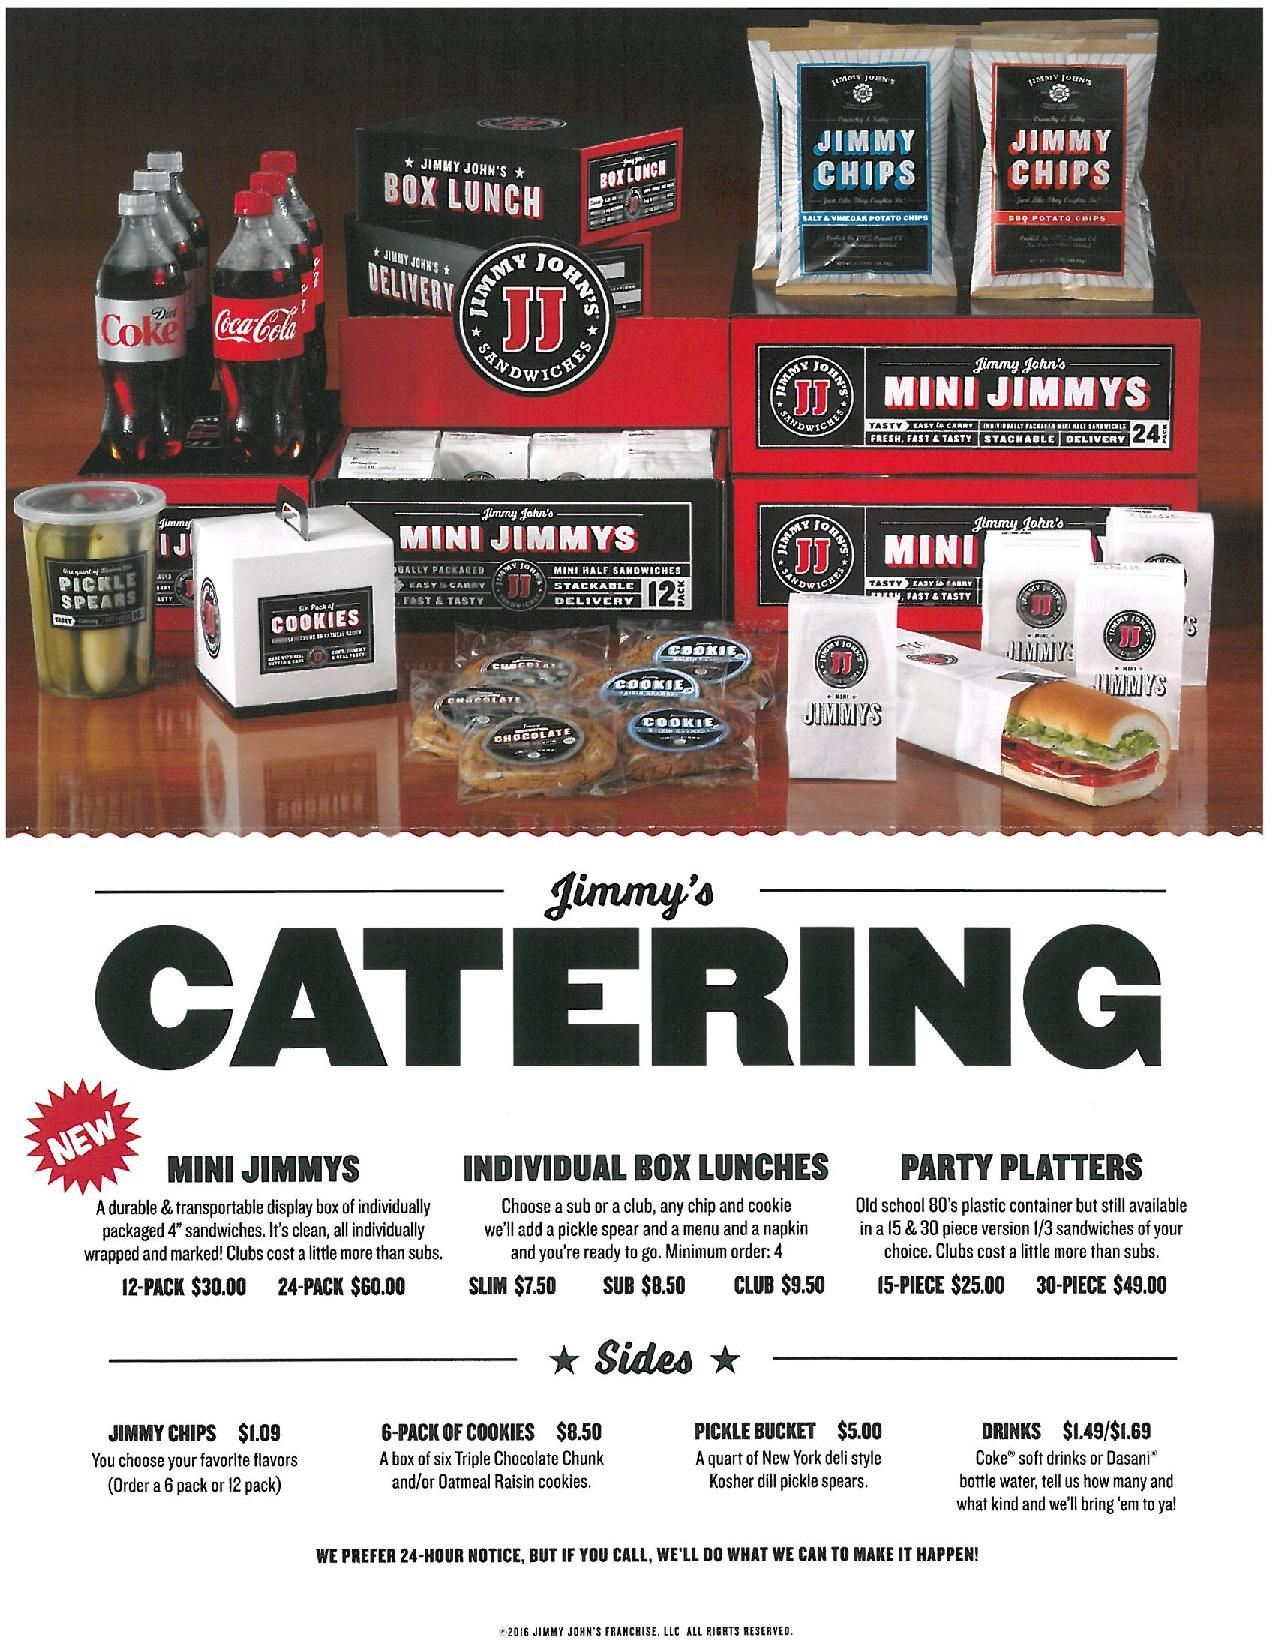 jimmy johns catering menu prices | catering menu prices | catering